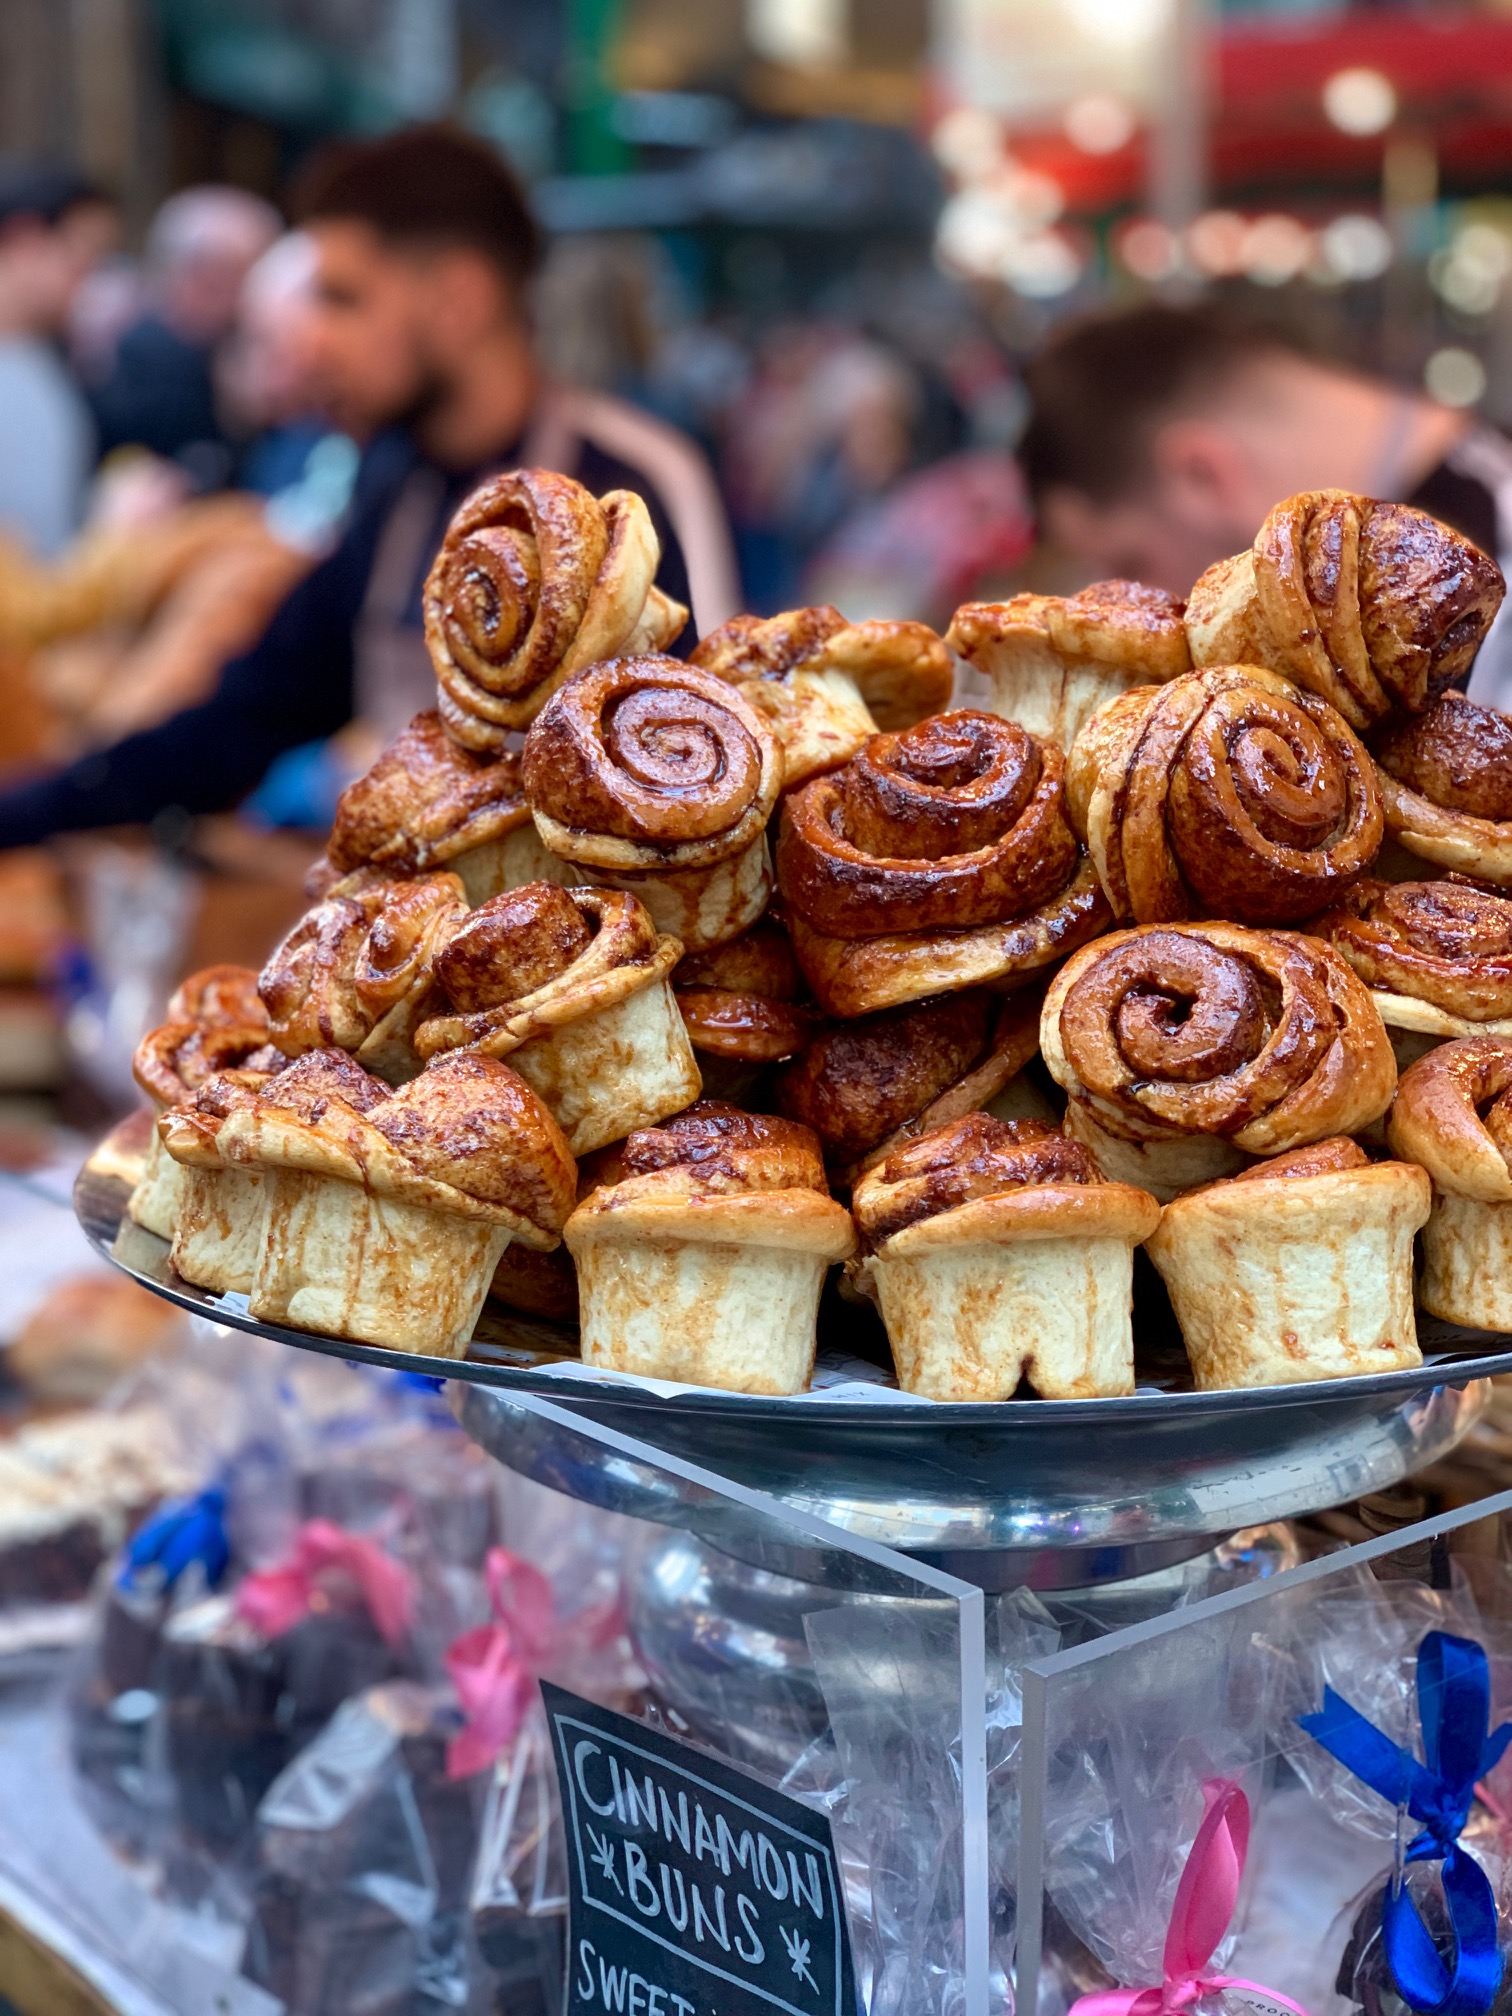 Borough Market - Bread Ahead Bakery (Cinnamon Scrolls)